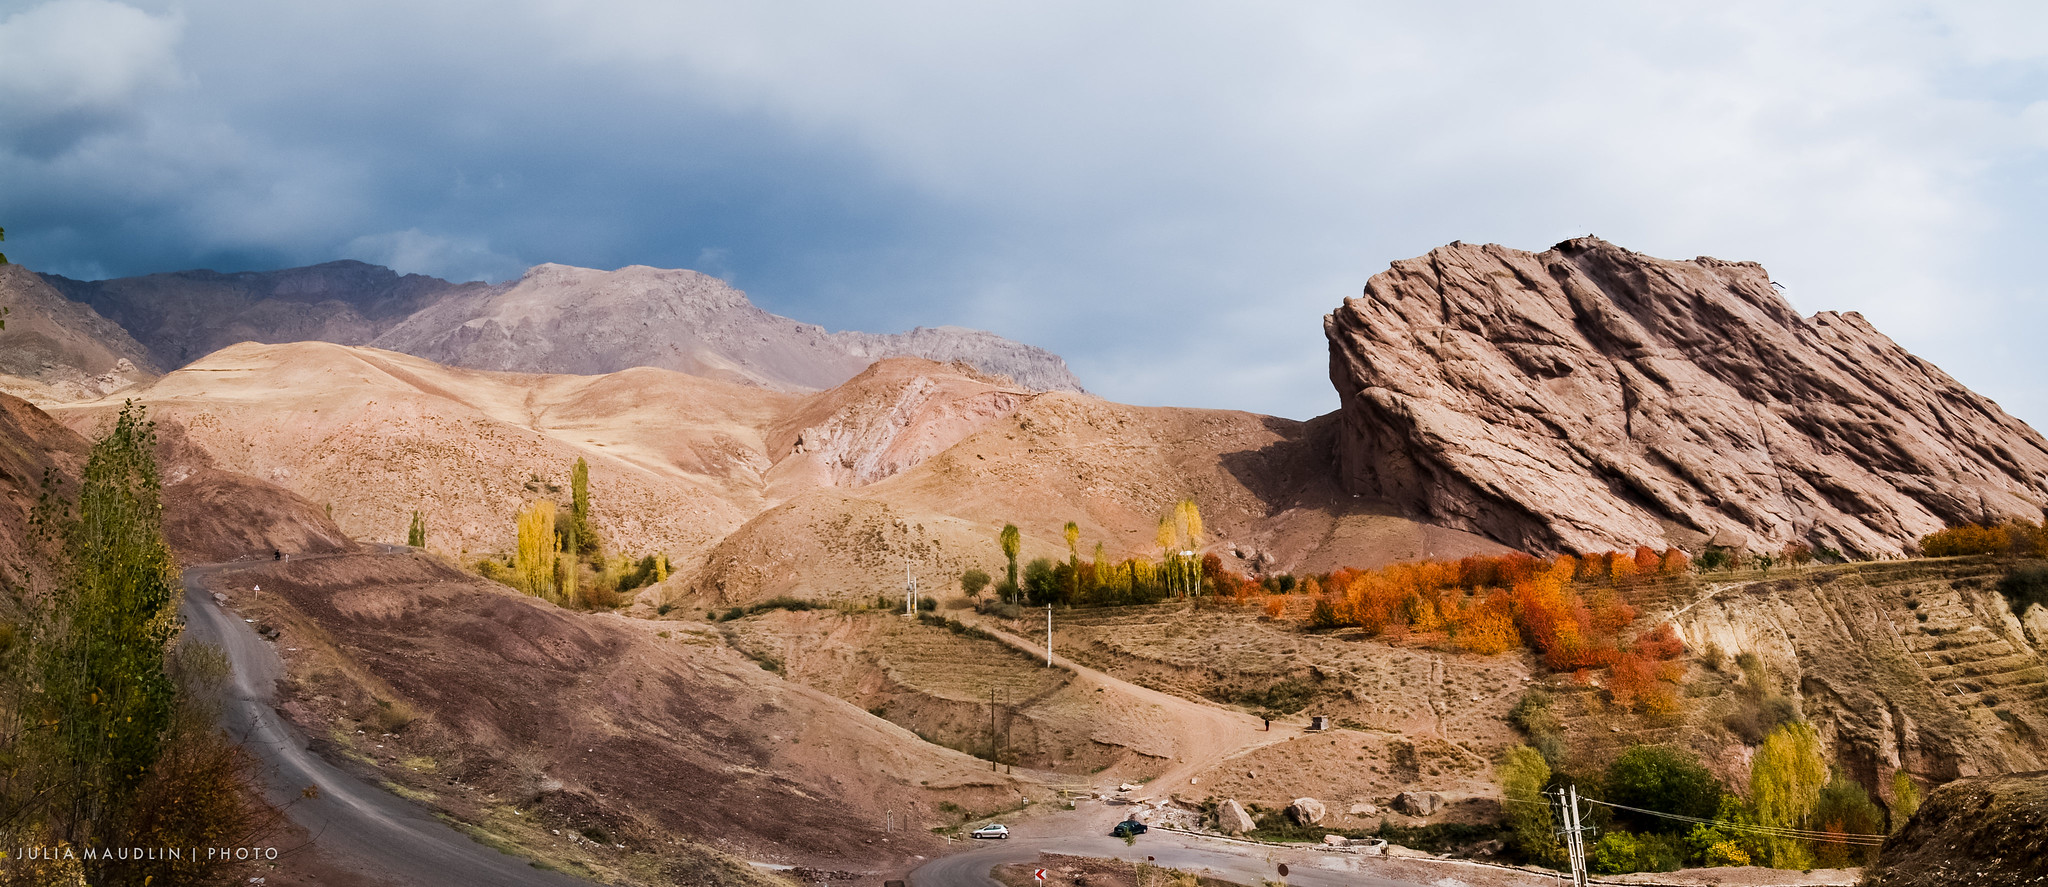 Remains of Alamut Castle Clinging to a Crag Above the Valley